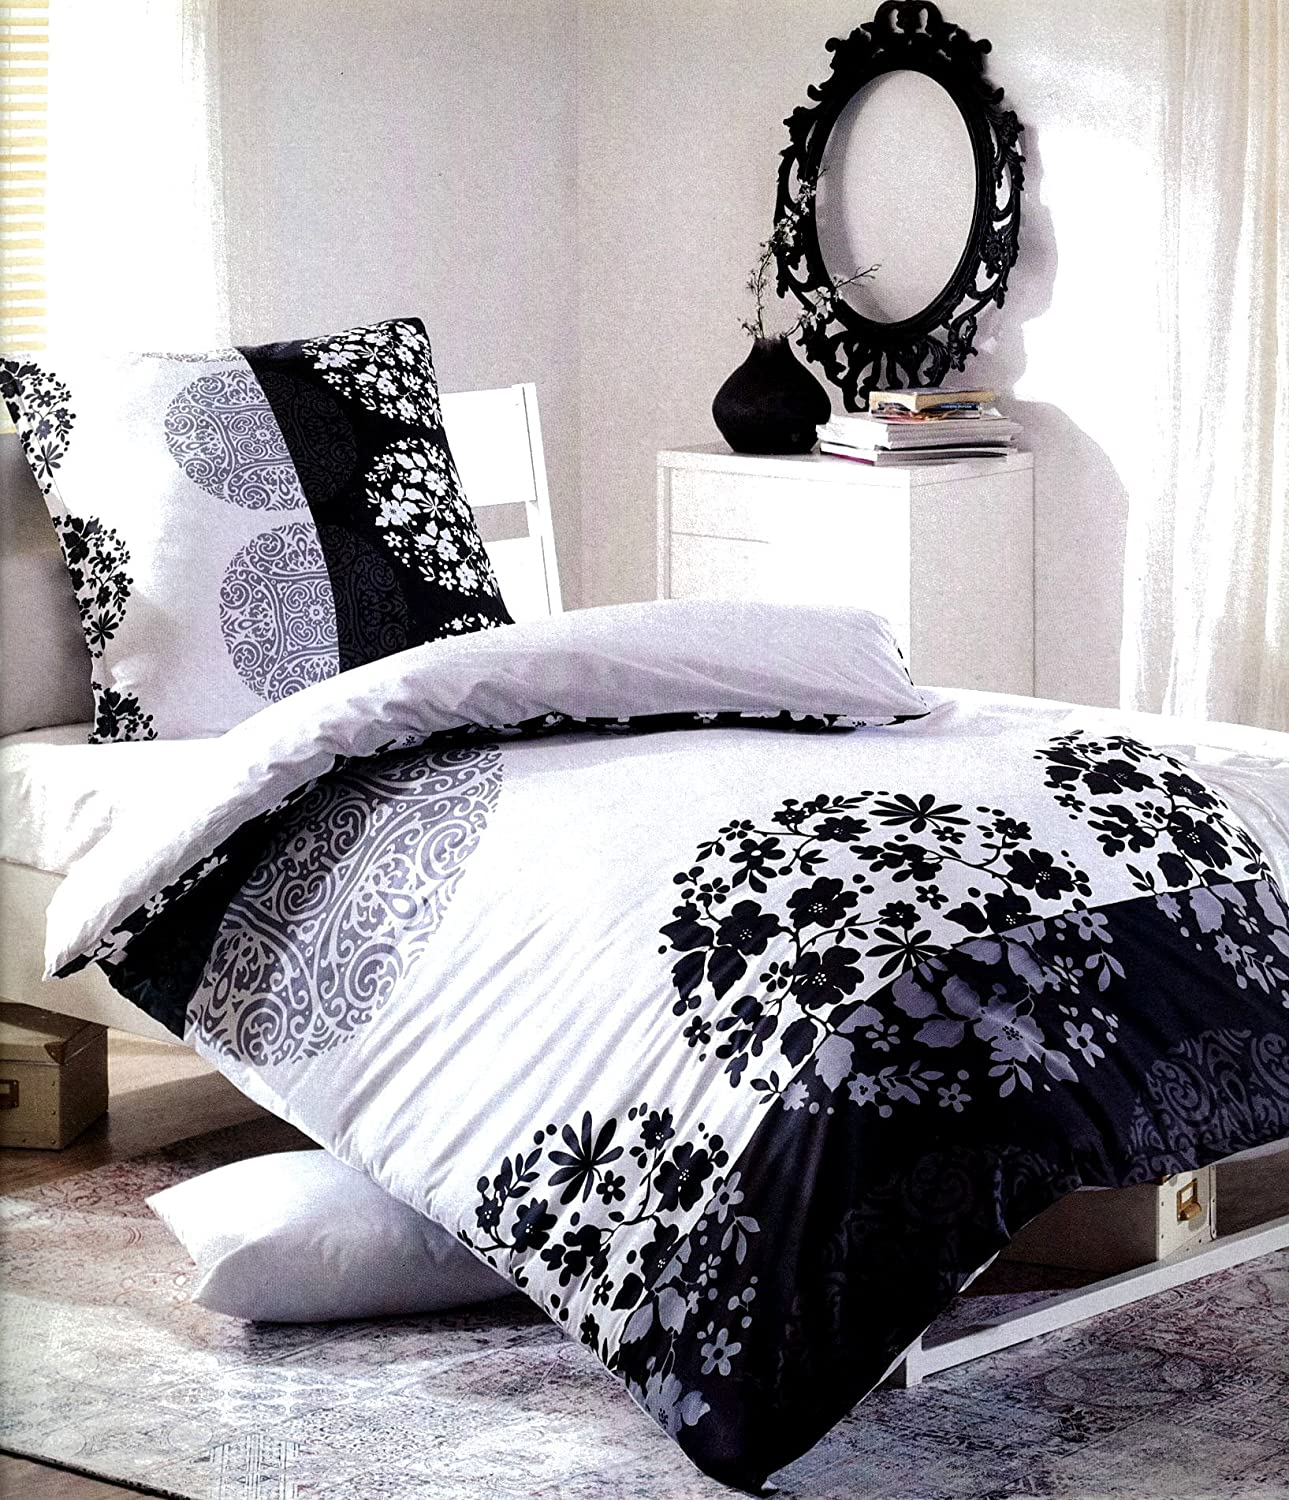 wei e bettw sche 155x220 amazon bettdecken 200 x joop bettw sche cornflower real madrid. Black Bedroom Furniture Sets. Home Design Ideas